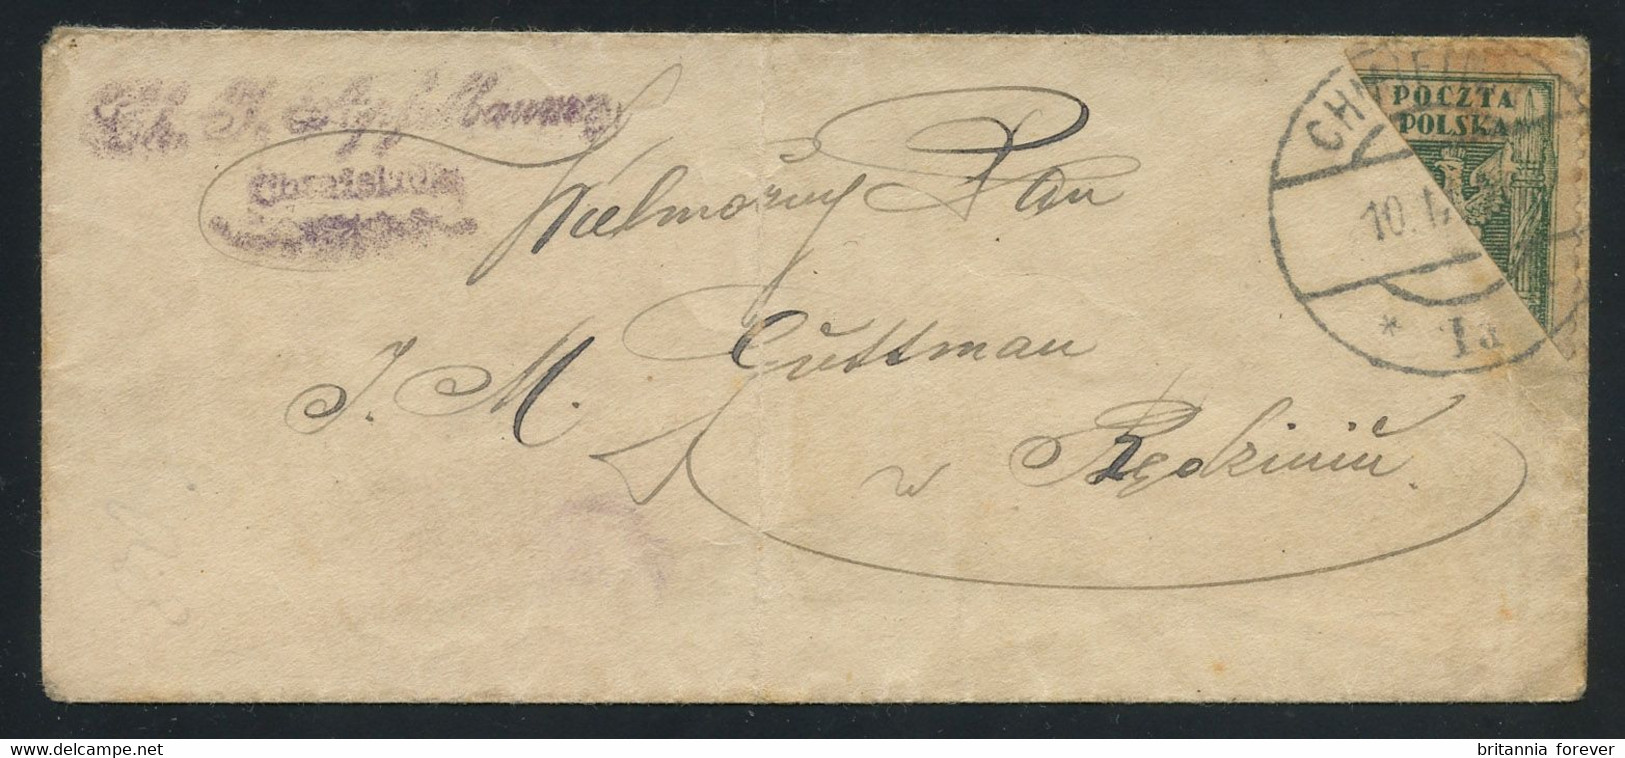 Poland 1920 Small Cover From CHMIELNIK Bearing Eagle 50f Green DIAGONAL BISECT, Great Aspect, VERY RARE - Covers & Documents